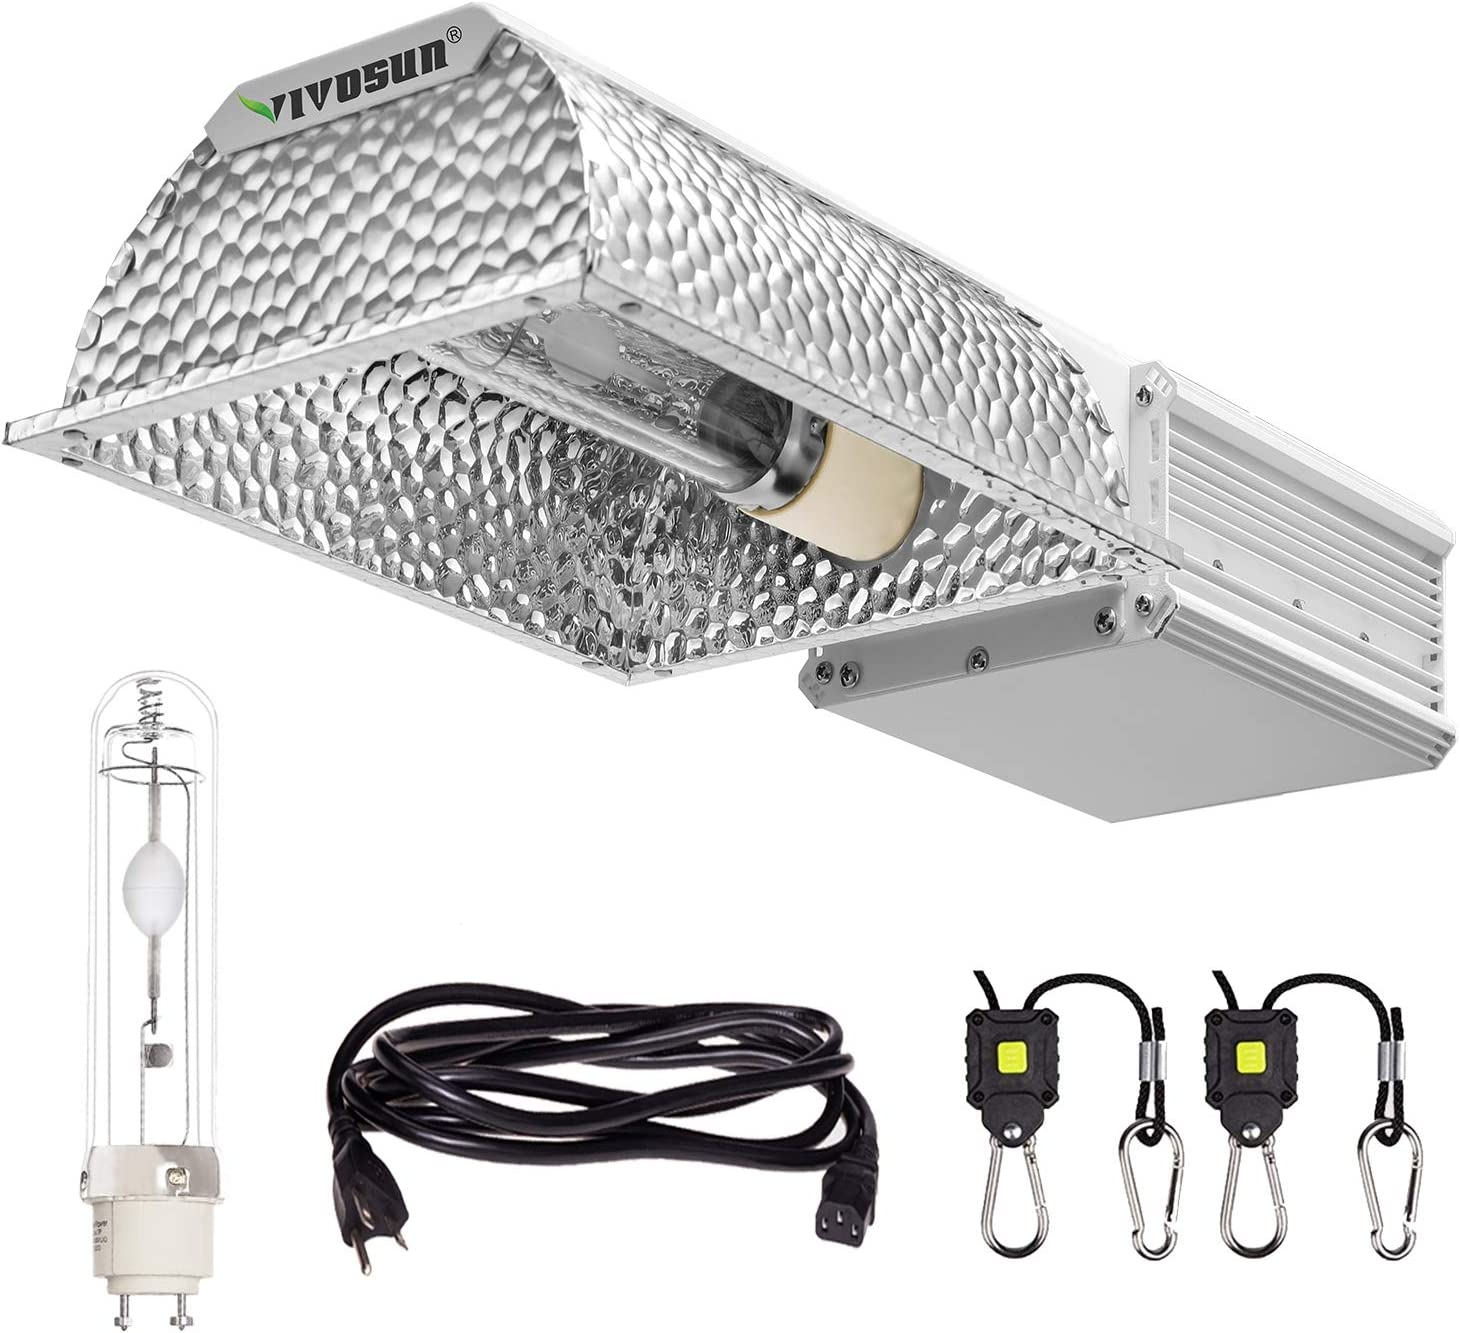 Vivosun Ceramic Metal Halide Upgraded Cooling